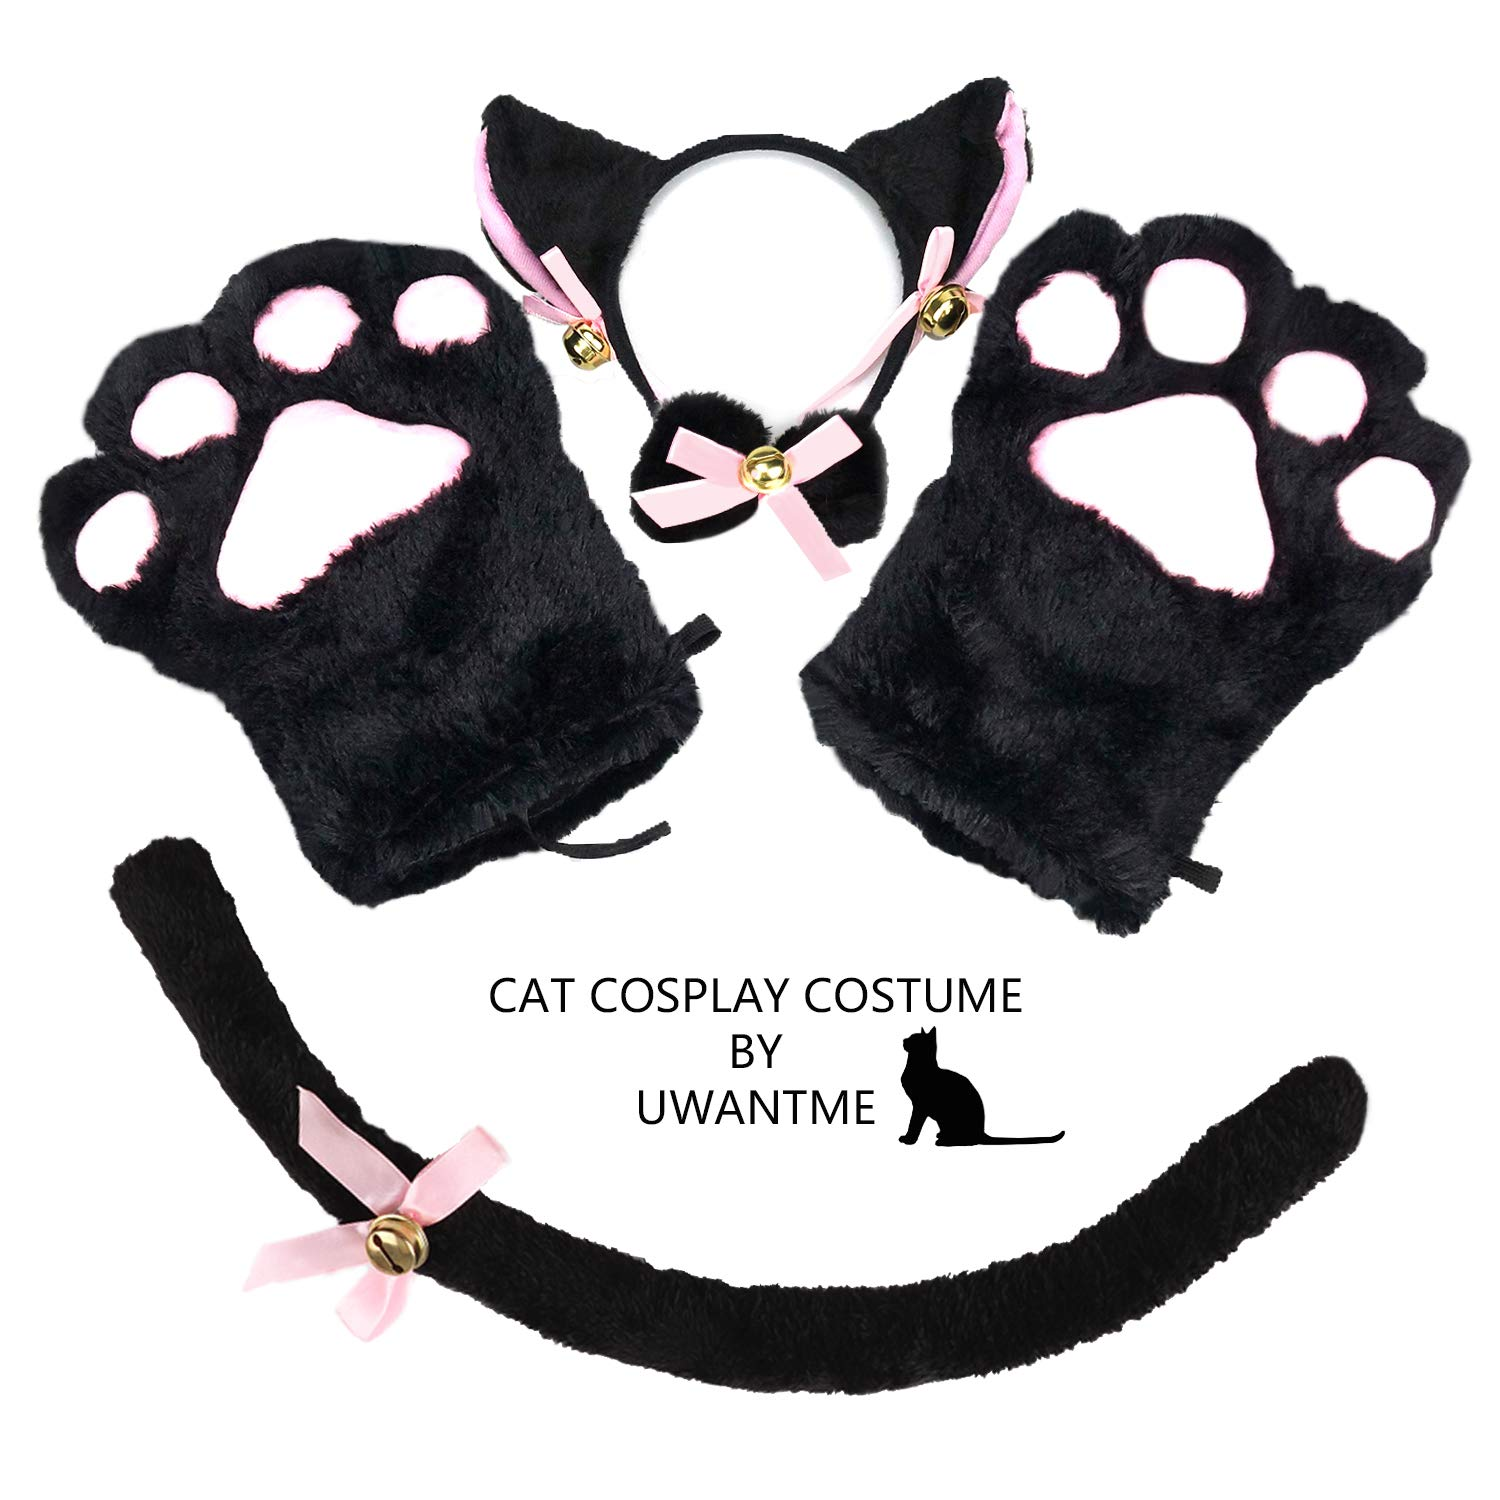 Cat Cosplay Costume Kitten Tail Ears Collar Paws Gloves Anime Lolita Gothic Set Black by UWANTME